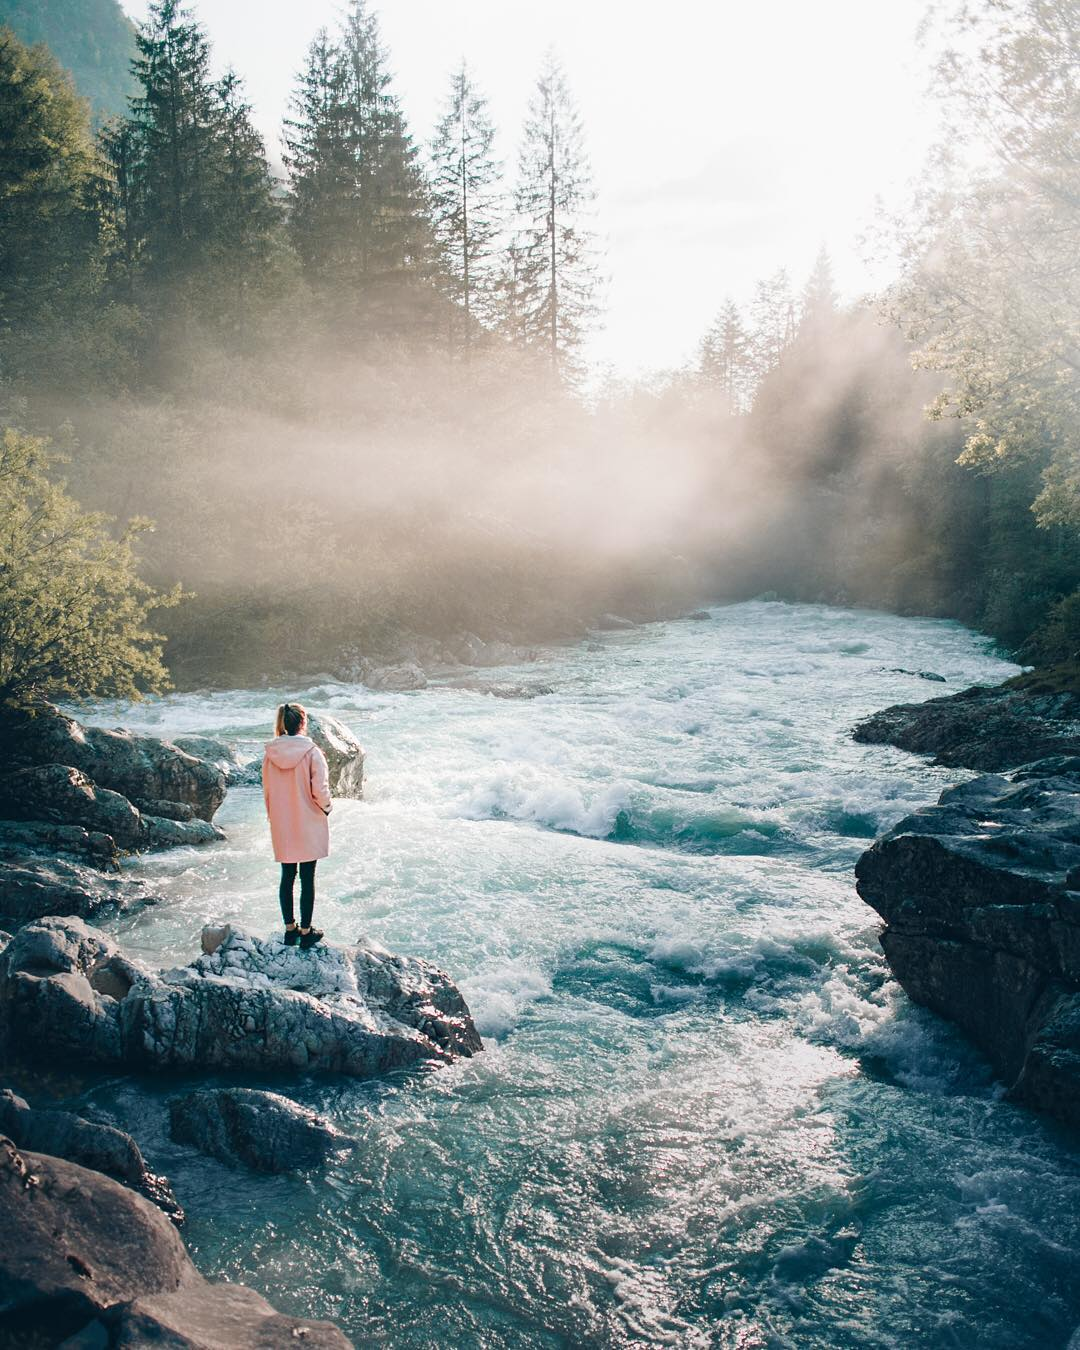 This is our last post on here, but there are much more pictures on our feeds if you are still seeking inspiration :) This one was taken on an early misty morning in the picturesque Soca Valley. This river makes the perfect getaway for an adventures weekend, trust me on this.  It was a pleasure to share some of our work here! Till next time! @lukas_pousset, @manuela_palmberger and @ibdansch #ifeelslovenia #makenewmemories • • • • • • • #skofjaloka#igslovenia #slovenia_ig #sloveniawithlove #slovenia360 #thisisslovenia #visitslovenia #slovenia #topsloveniaphoto #suspensionbridge #tourism #beautifuldestinations #woowvisuals #artofvisuals #traveleurope #travel #backpack #roadtrip #destinationideas #skofja #town